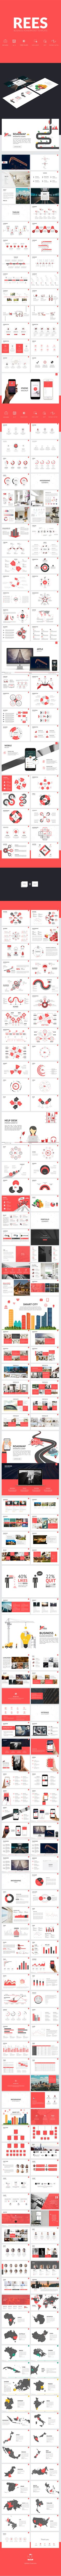 REES #Business #Google Slides - Google #Slides Presentation Templates Download here: https://graphicriver.net/item/rees-business-google-slides/19331822?ref=alena994